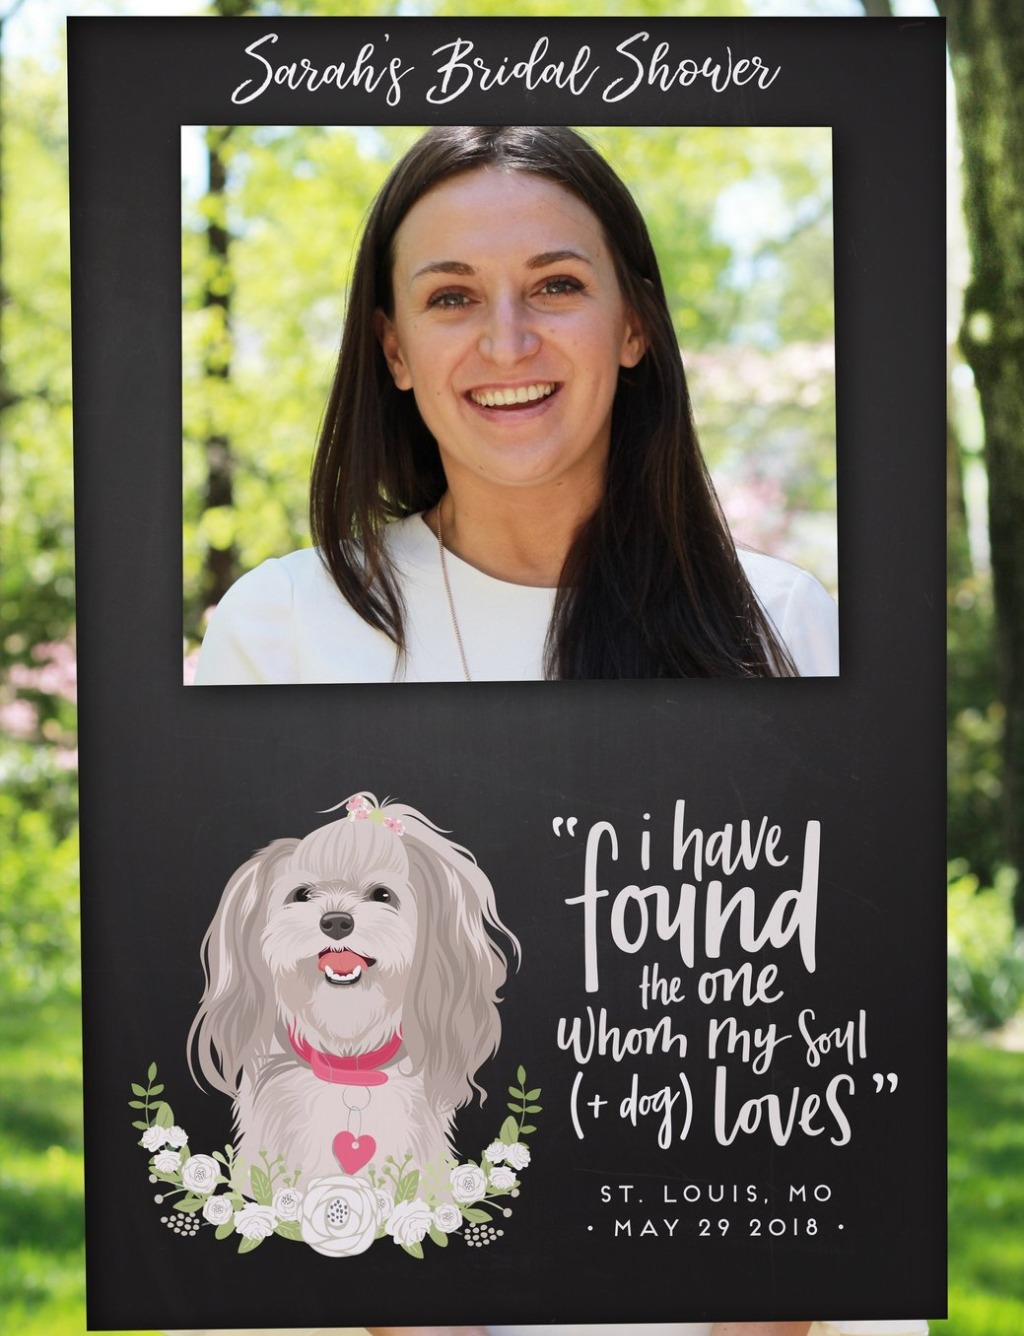 At Miss Design Berry, we love a good prop, especially if your pets are involved!! This awesome Chalkboard Photo Frame Prop with Pet